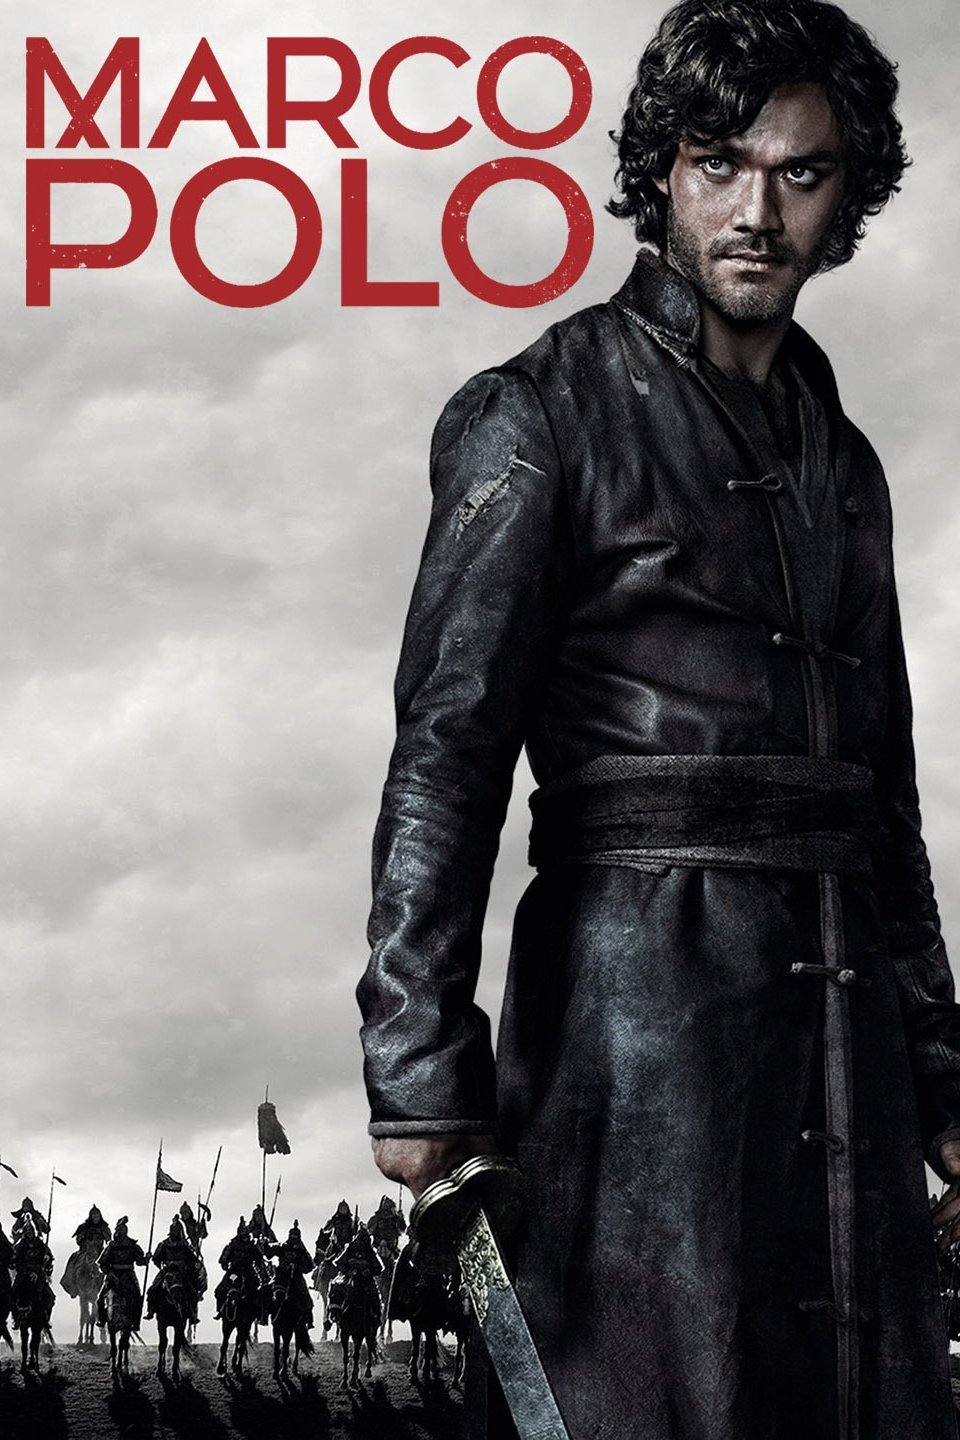 Marco Polo Season 1 Complete 480p WEB-Rip Download